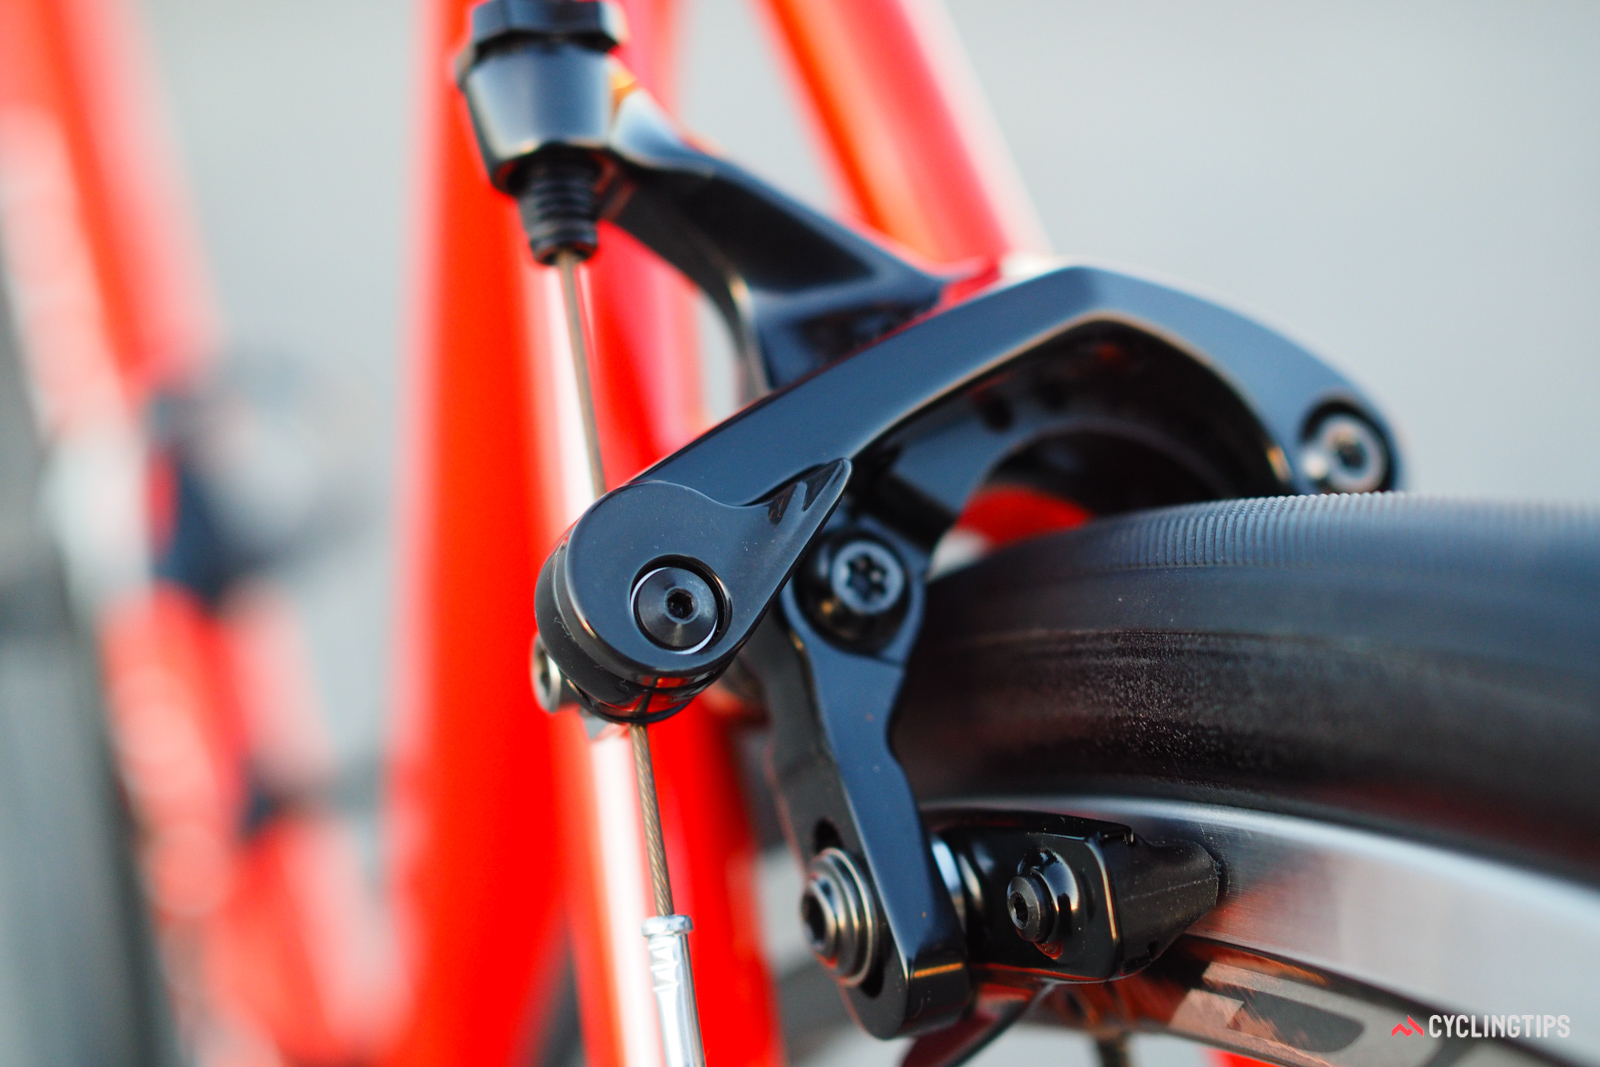 The streamlined quick-release lever lends a newly sleek appearance.